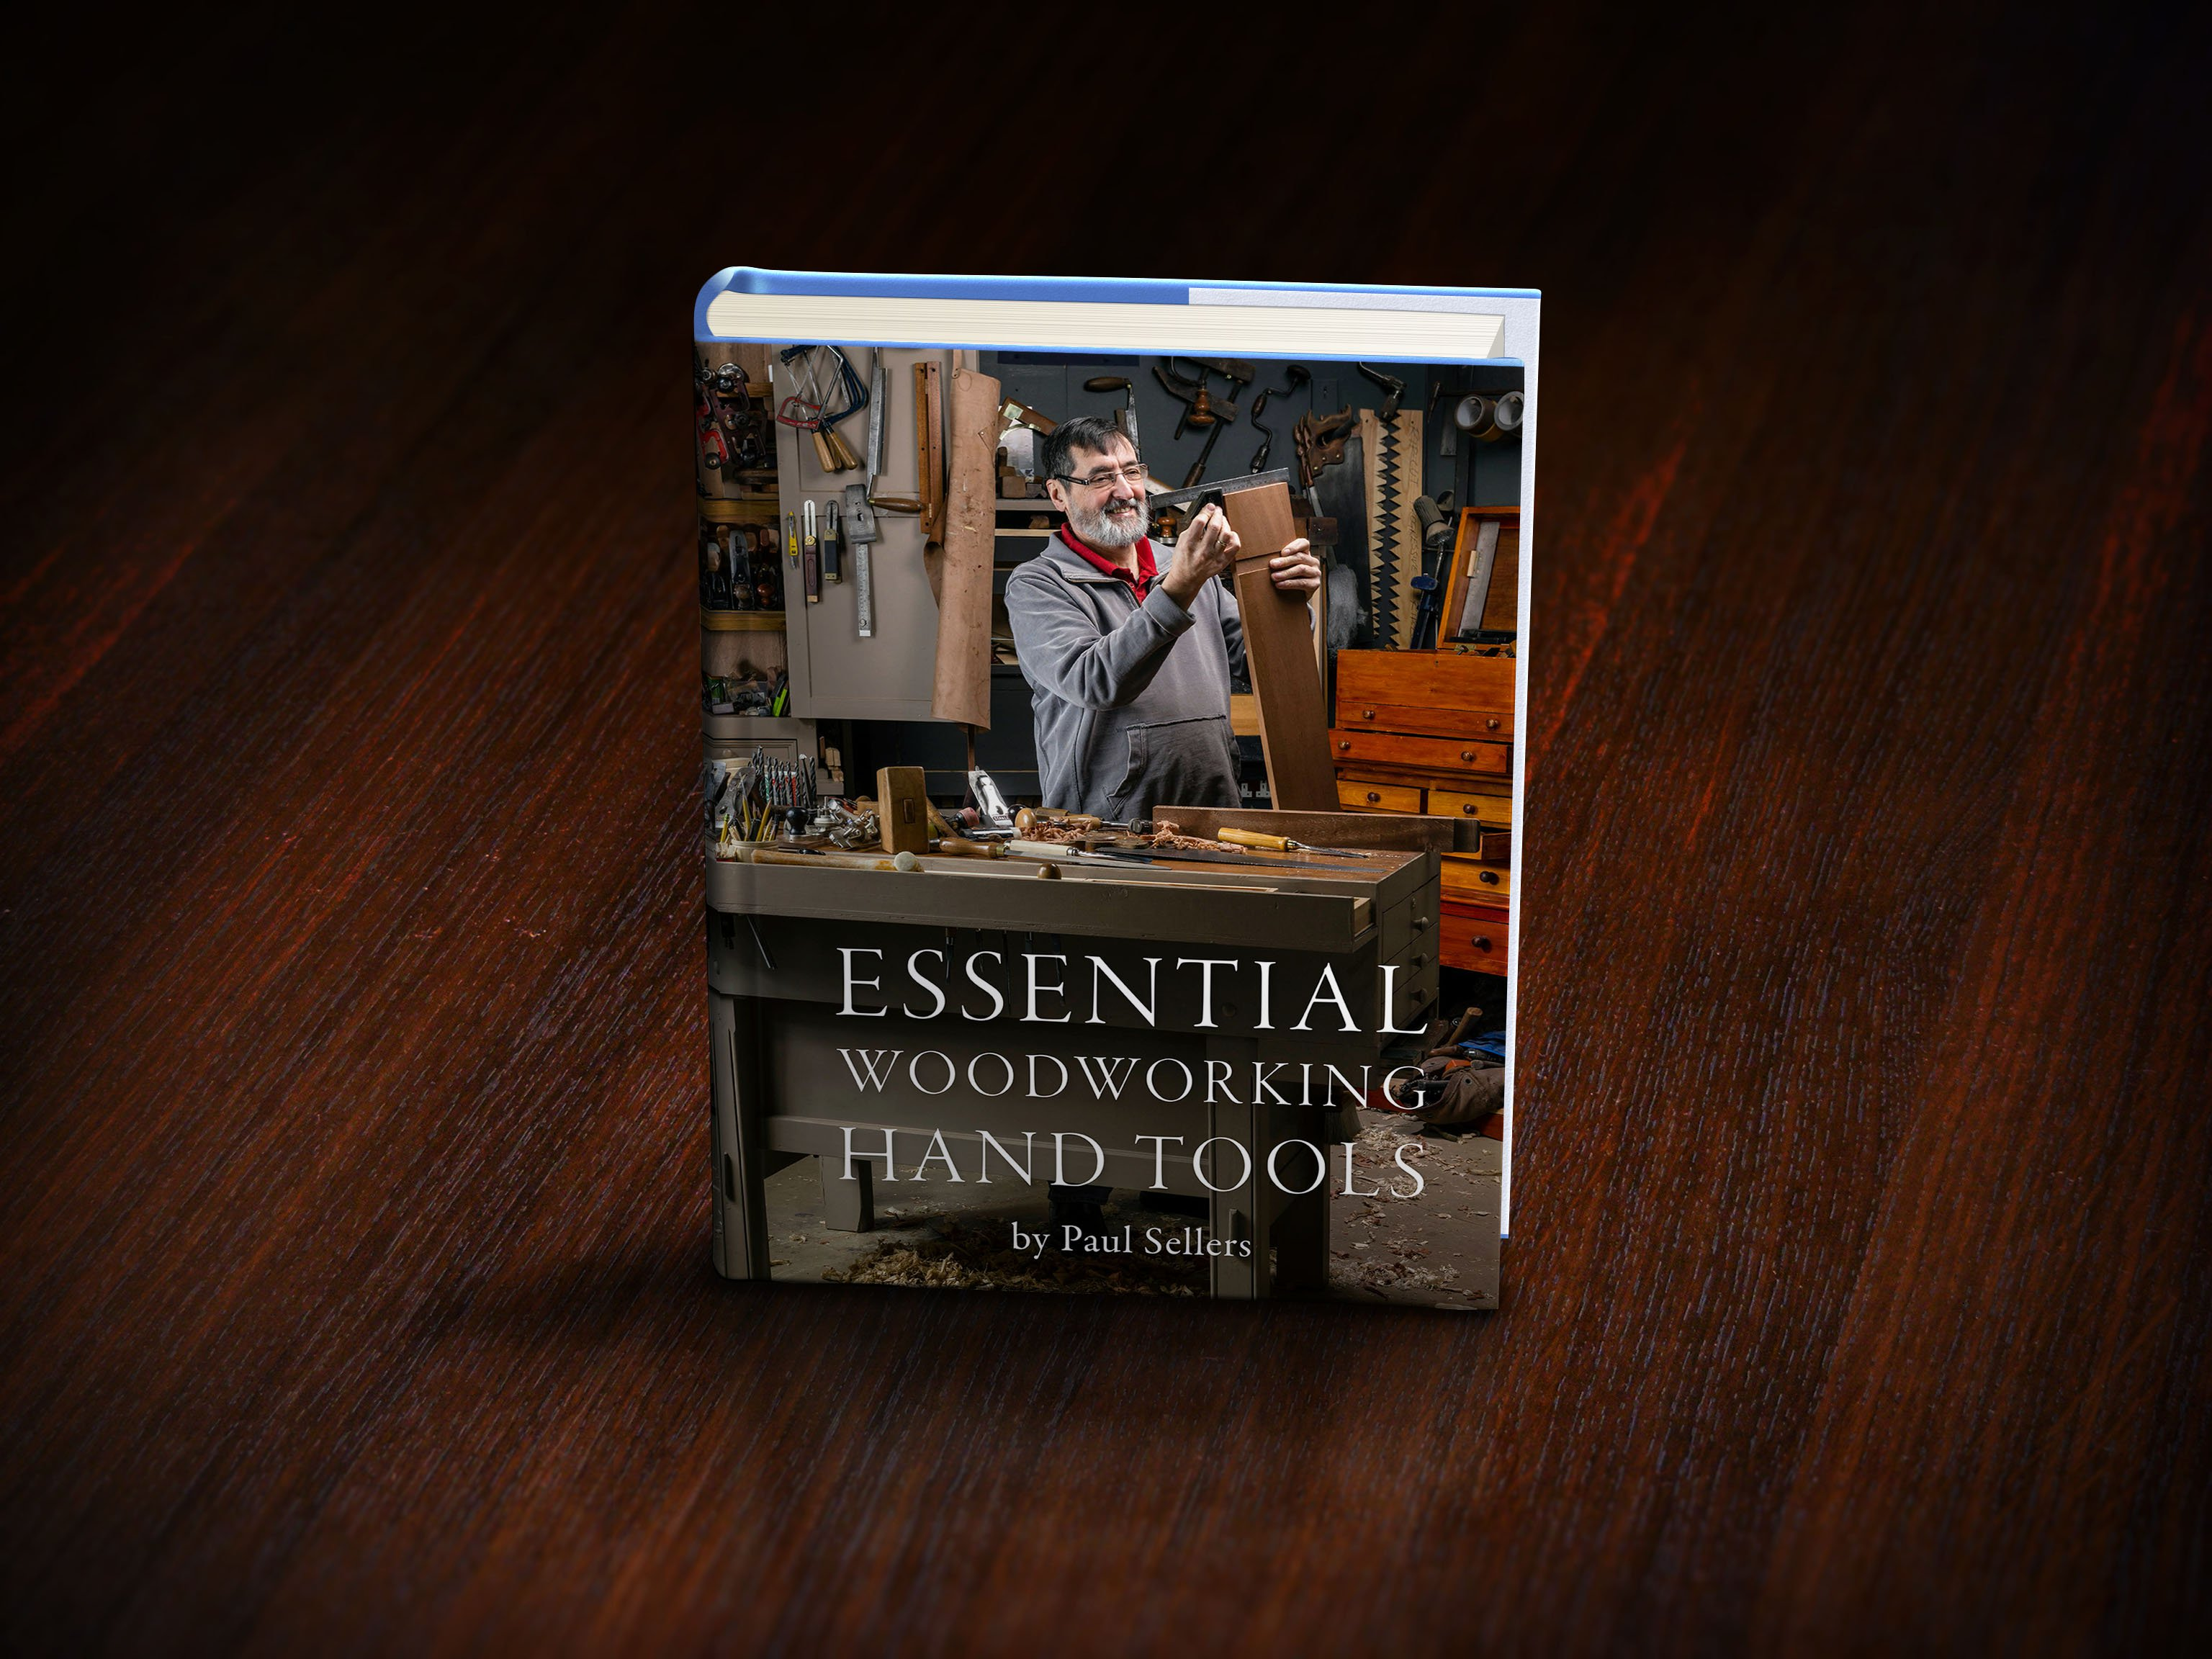 essential woodworking hand tools (book)